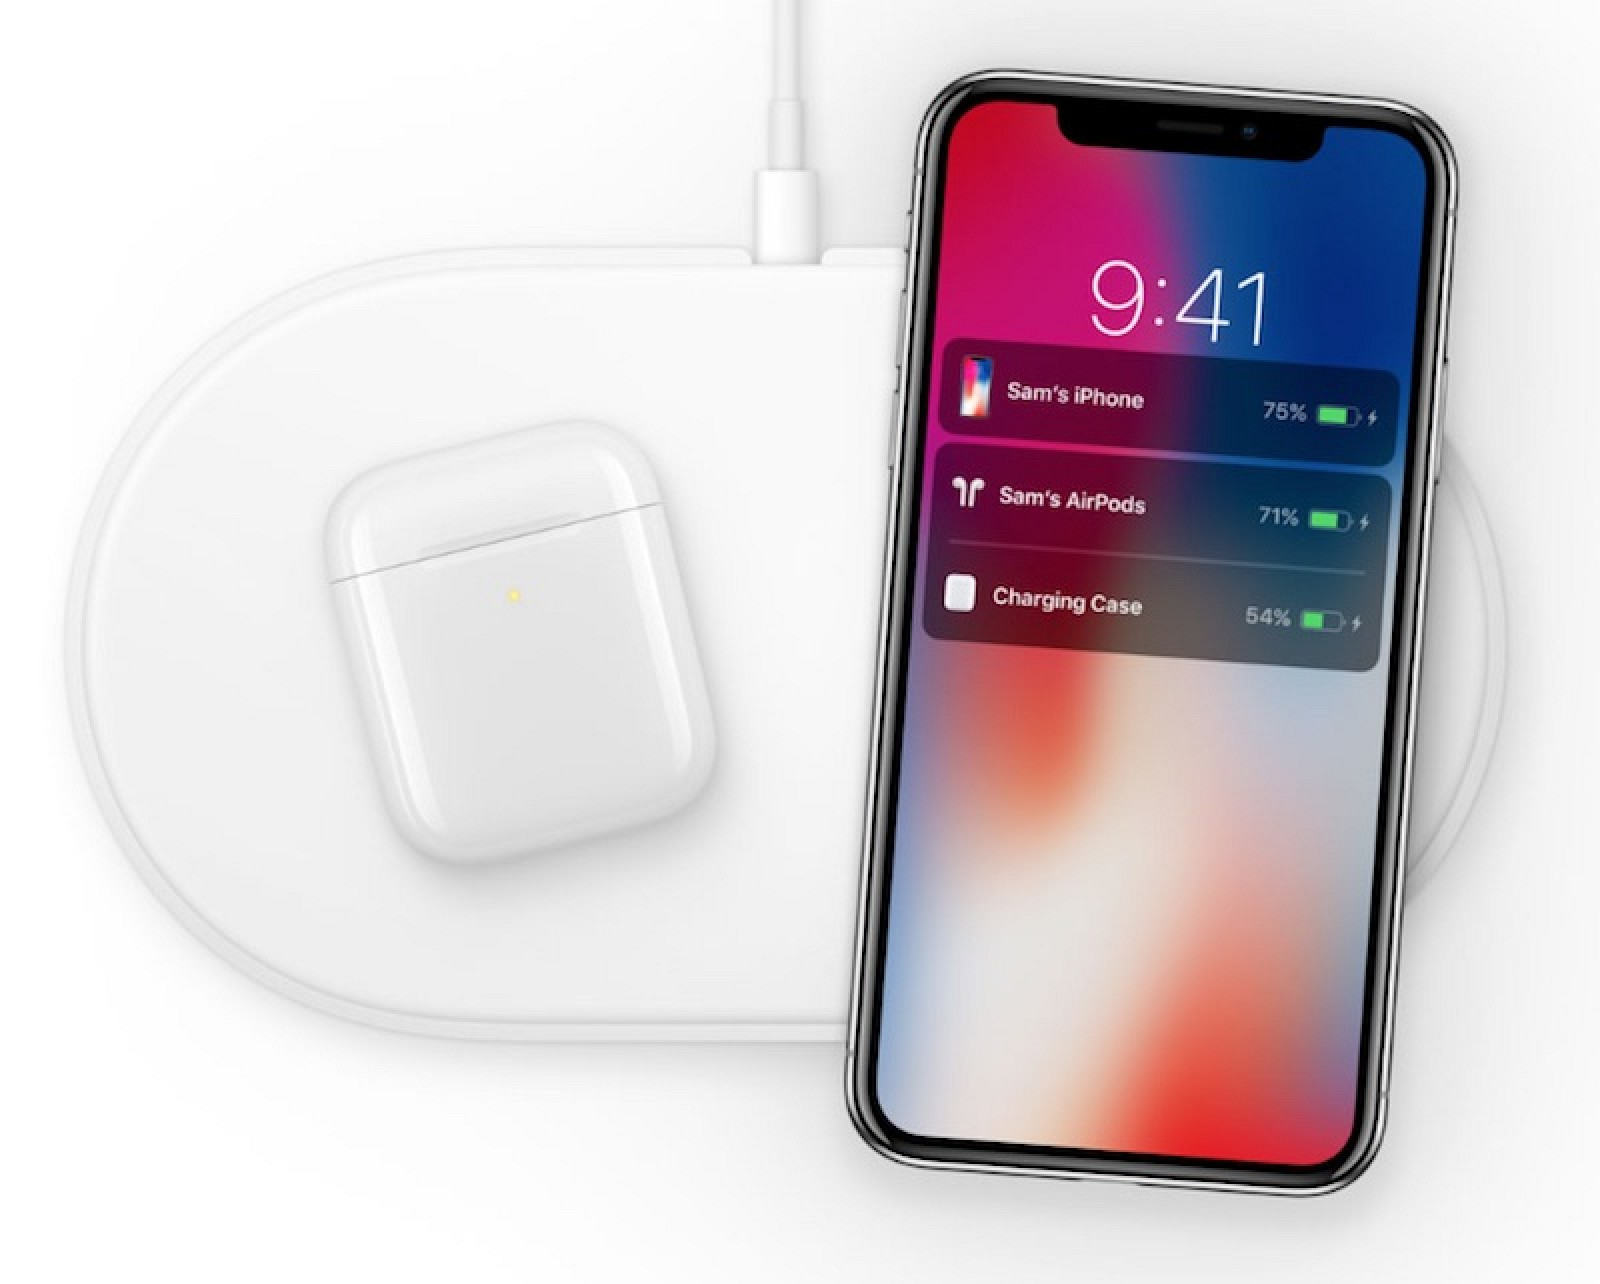 92d0e538d5c AirPods Wireless Charging Case Said to Work With Any Qi-Certified Charging  Mat